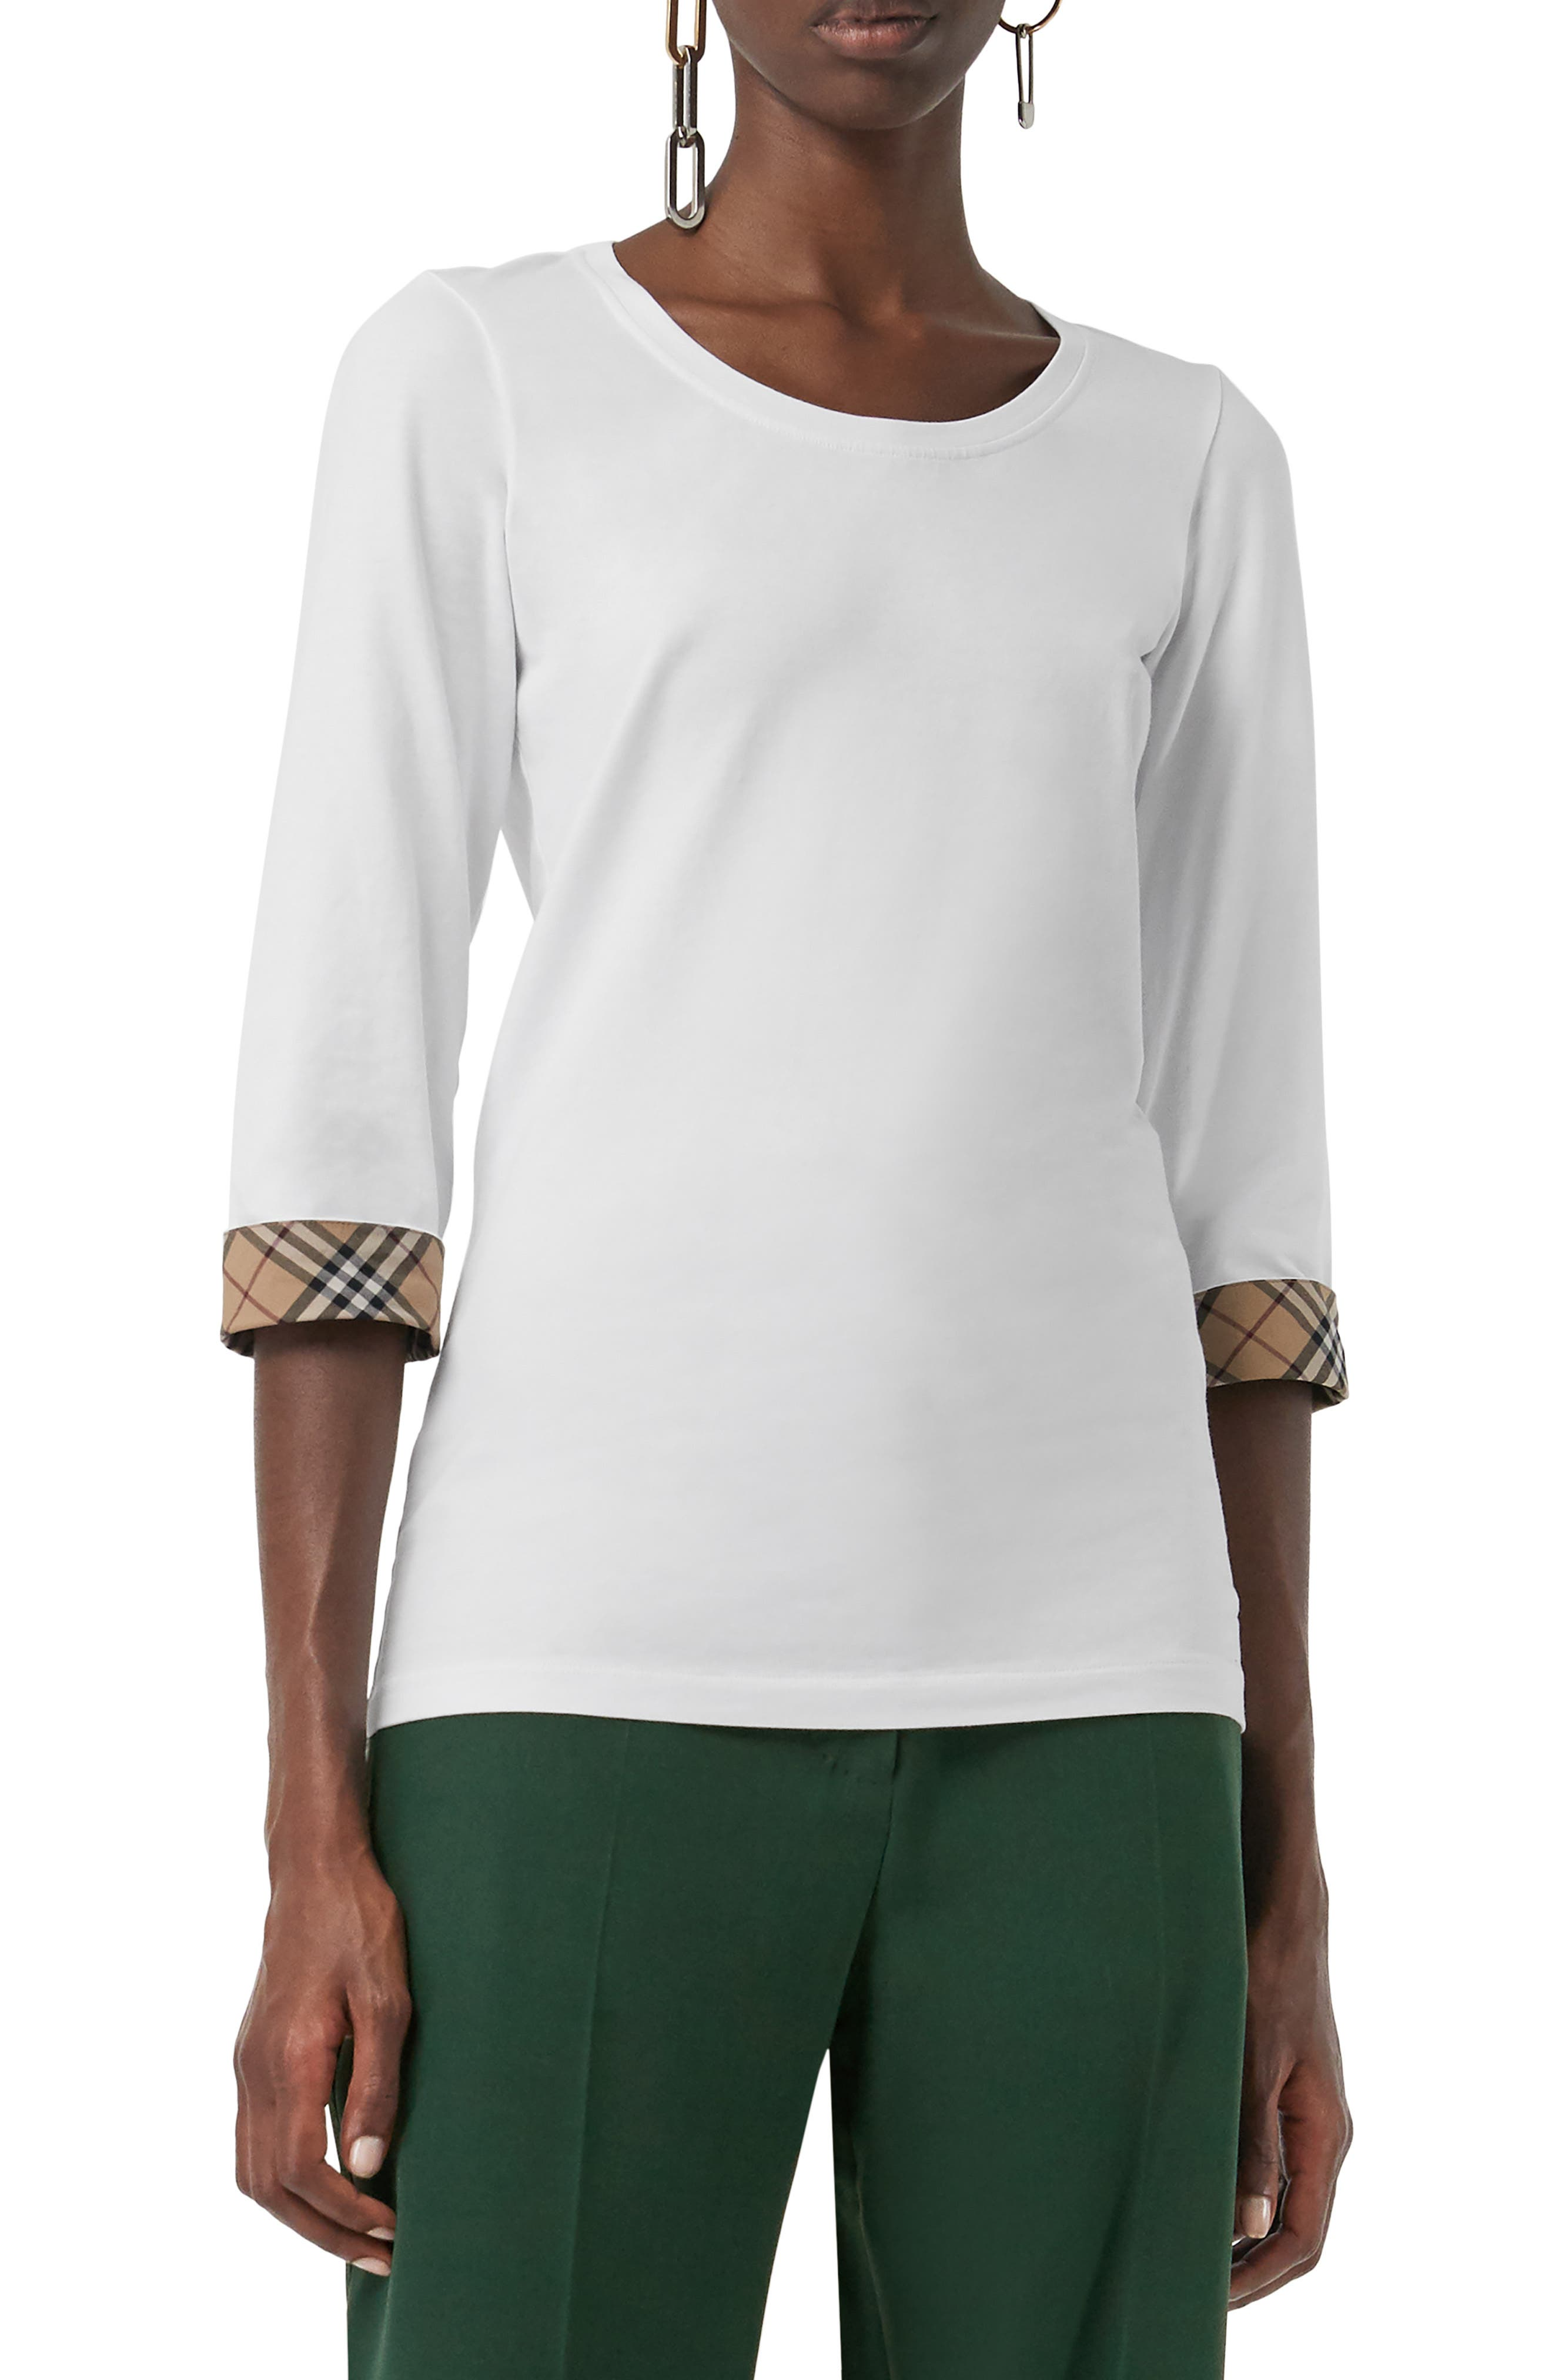 Lohit Check Cuff Stretch Cotton Tee,                             Alternate thumbnail 7, color,                             100